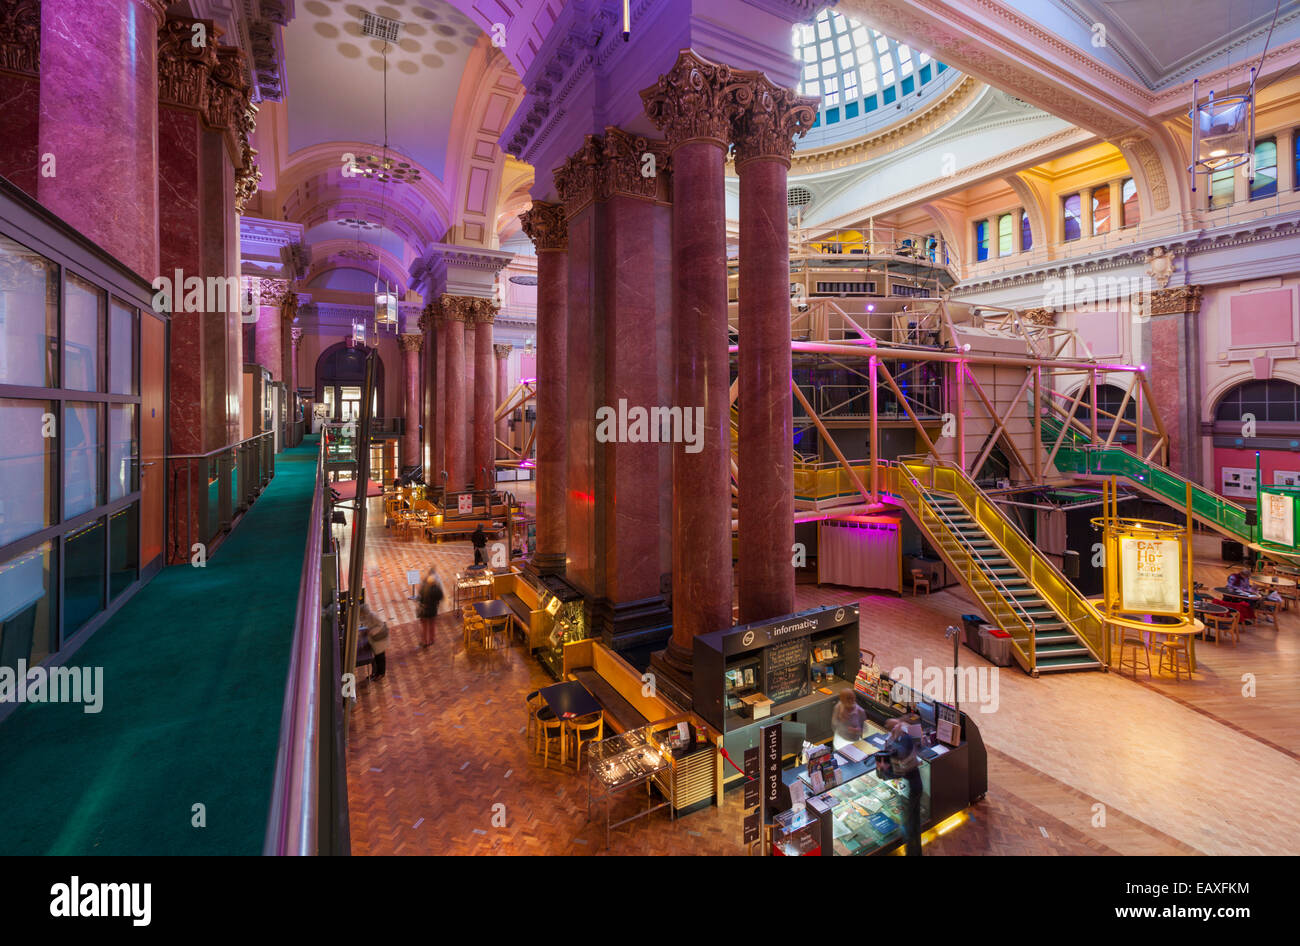 The Royal Exchange Theatre Interior St Anns Square Manchester city centre Greater Manchester England UK GB EU Europe Stock Photo